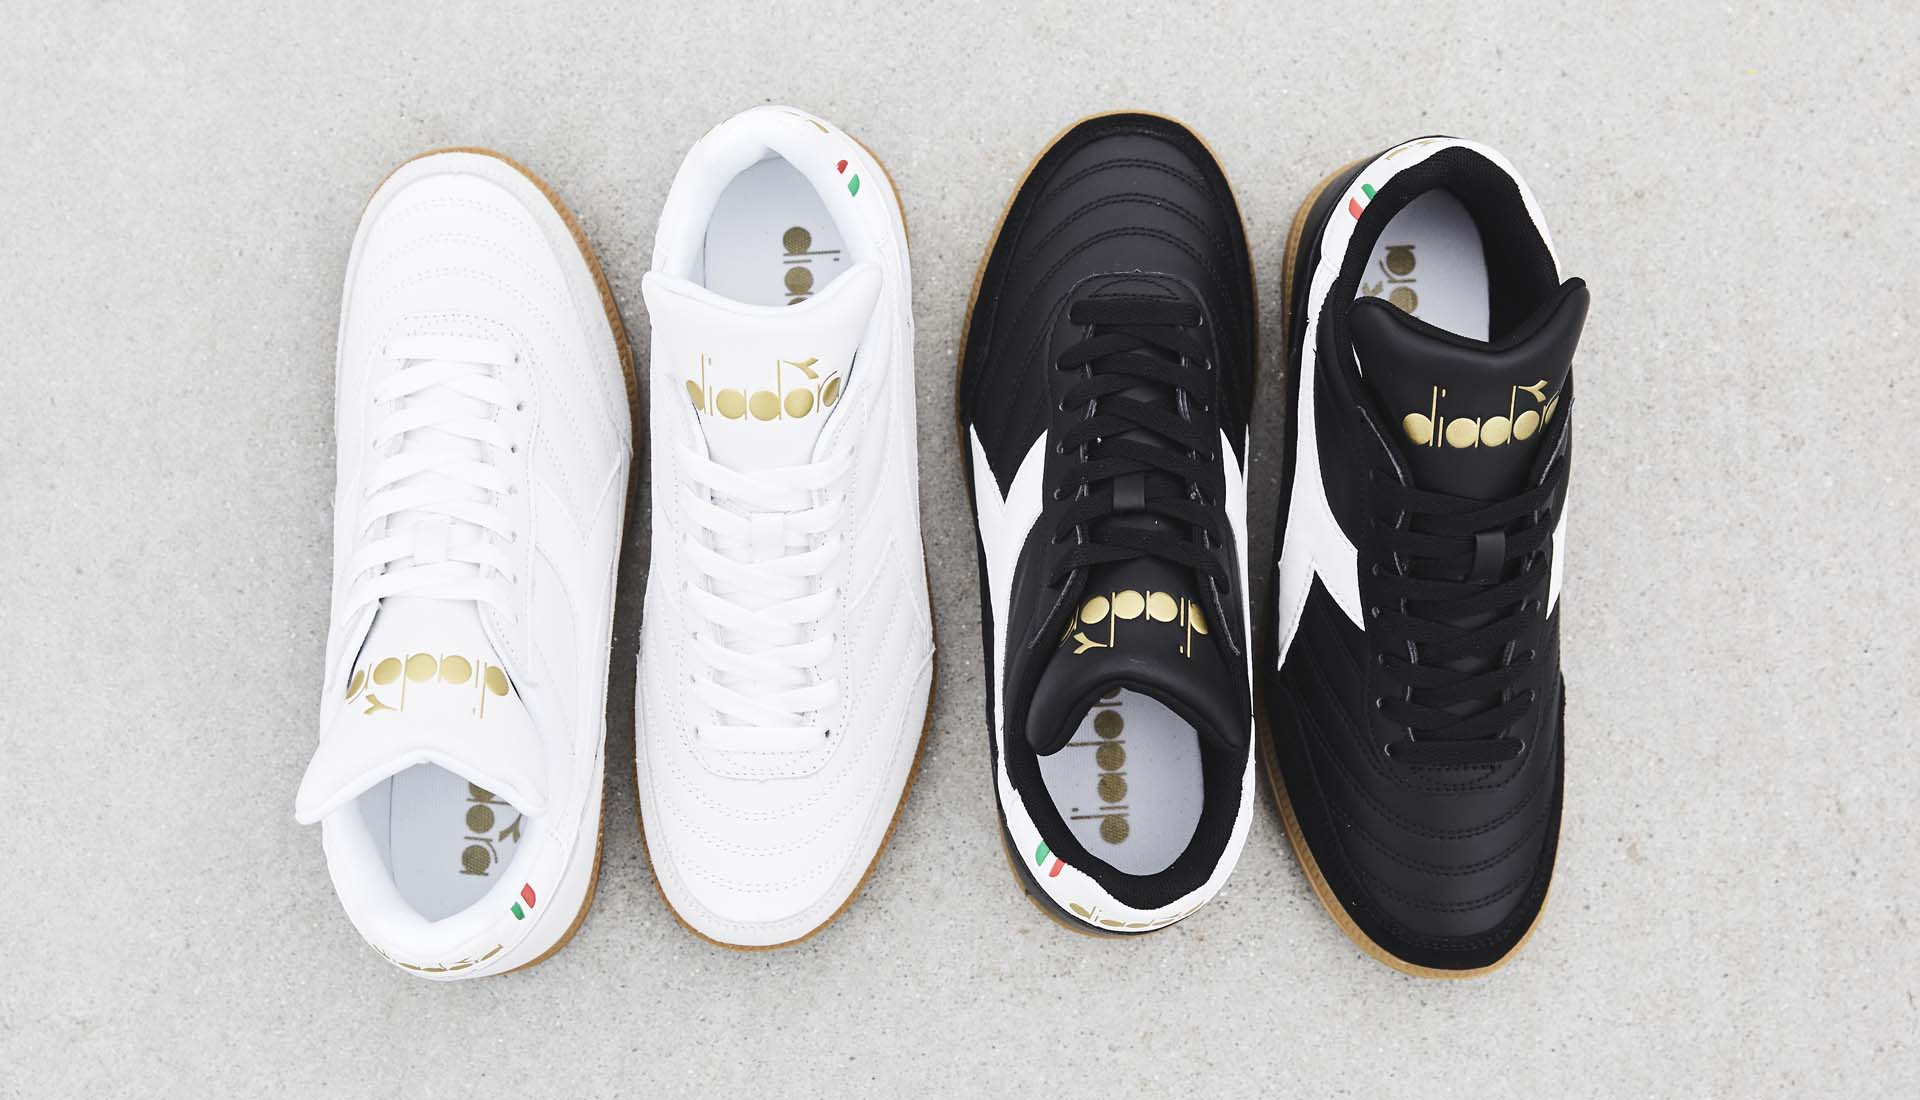 1d0dfdeea7d Diadora Launch Gold Indoor Trainers In Two Colourways - SoccerBible